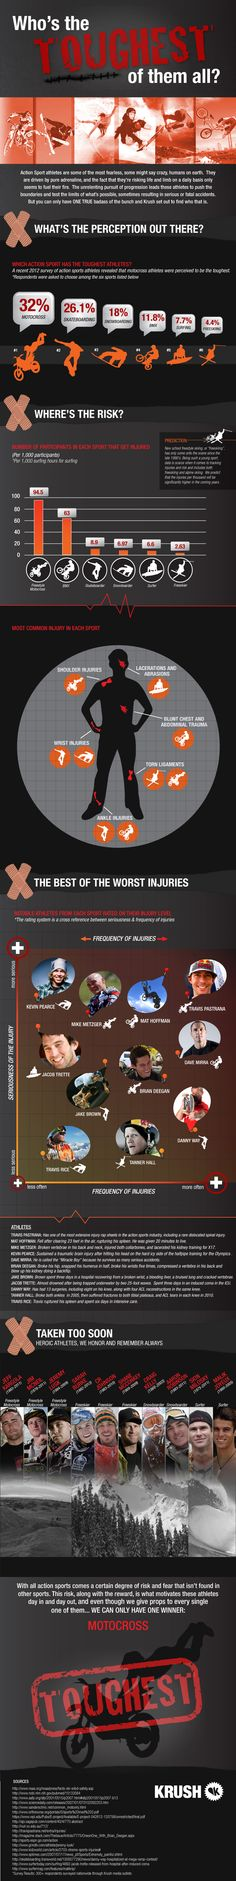 The toughest action sports athletes based on public opinion and injury reports. What do you think? Do you agree?